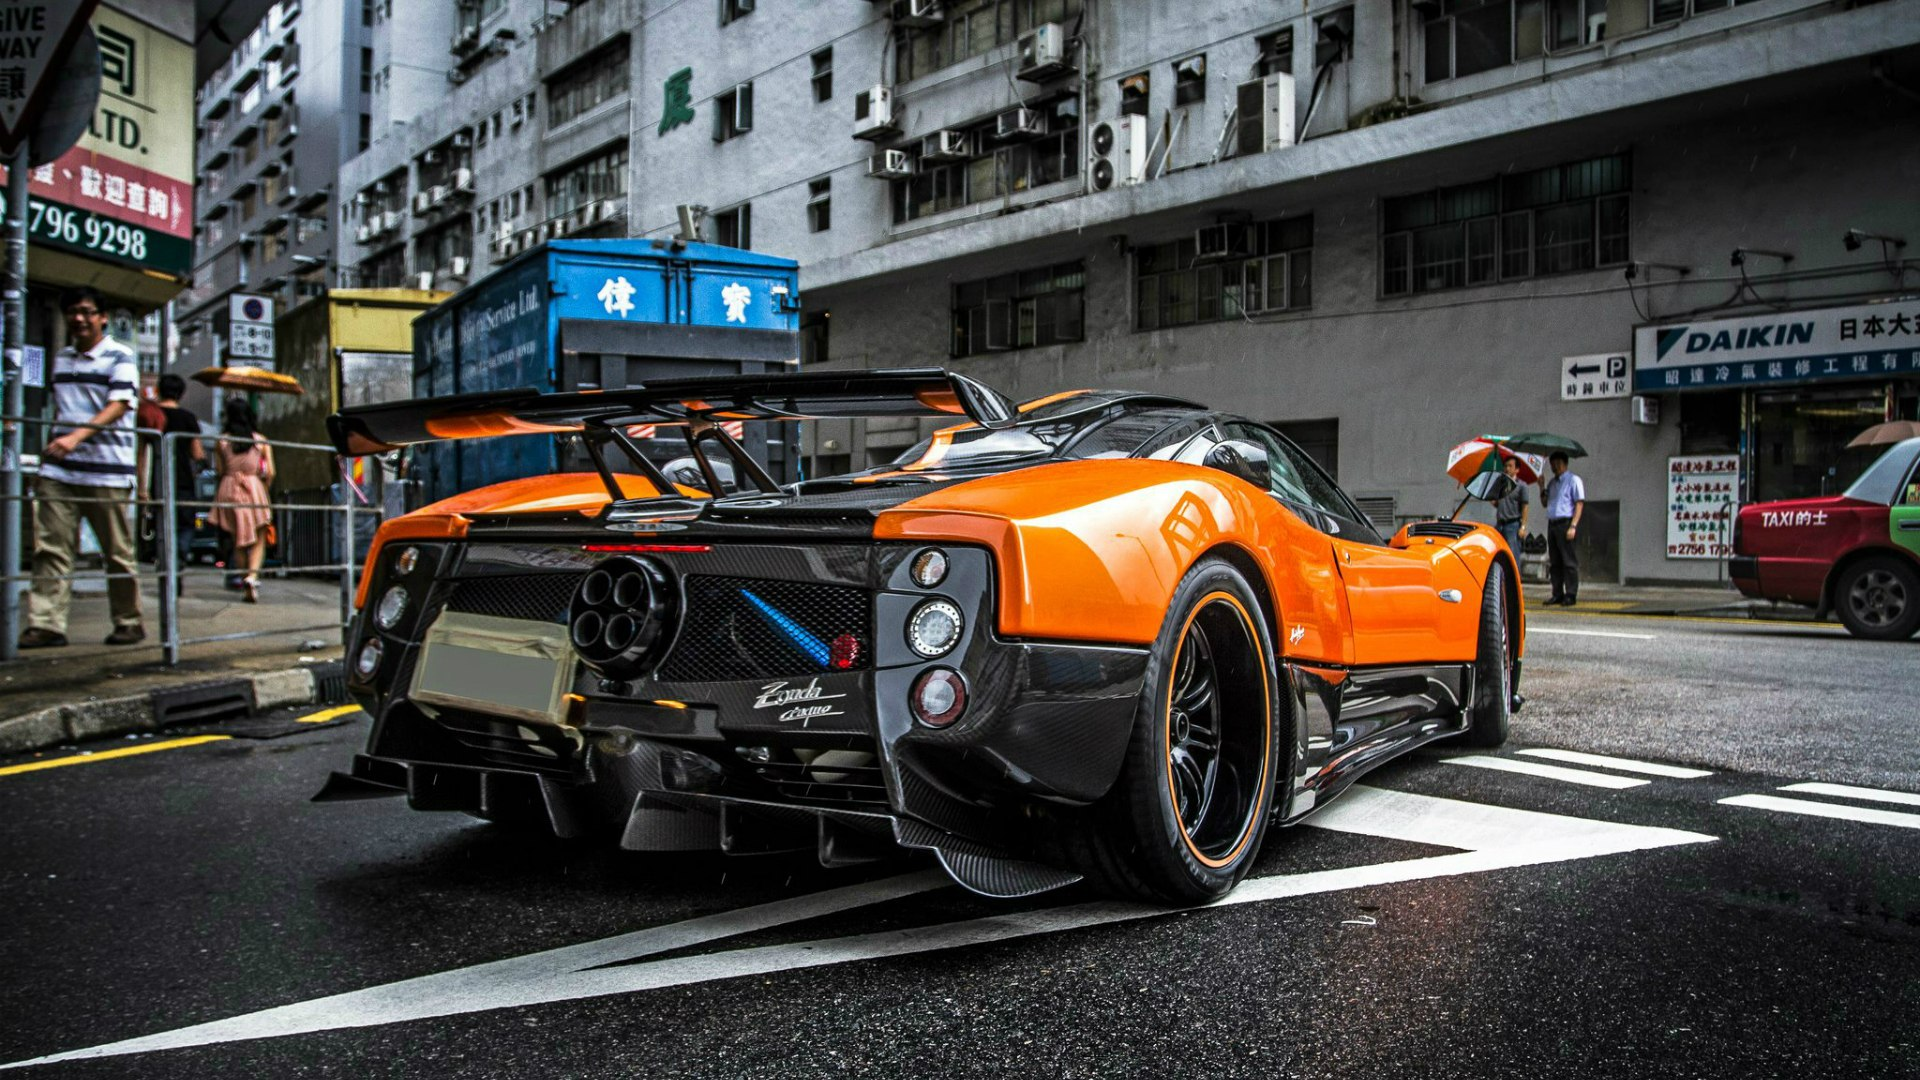 Pagani Zonda Cinque Wallpapers and Background Images   stmednet 1920x1080